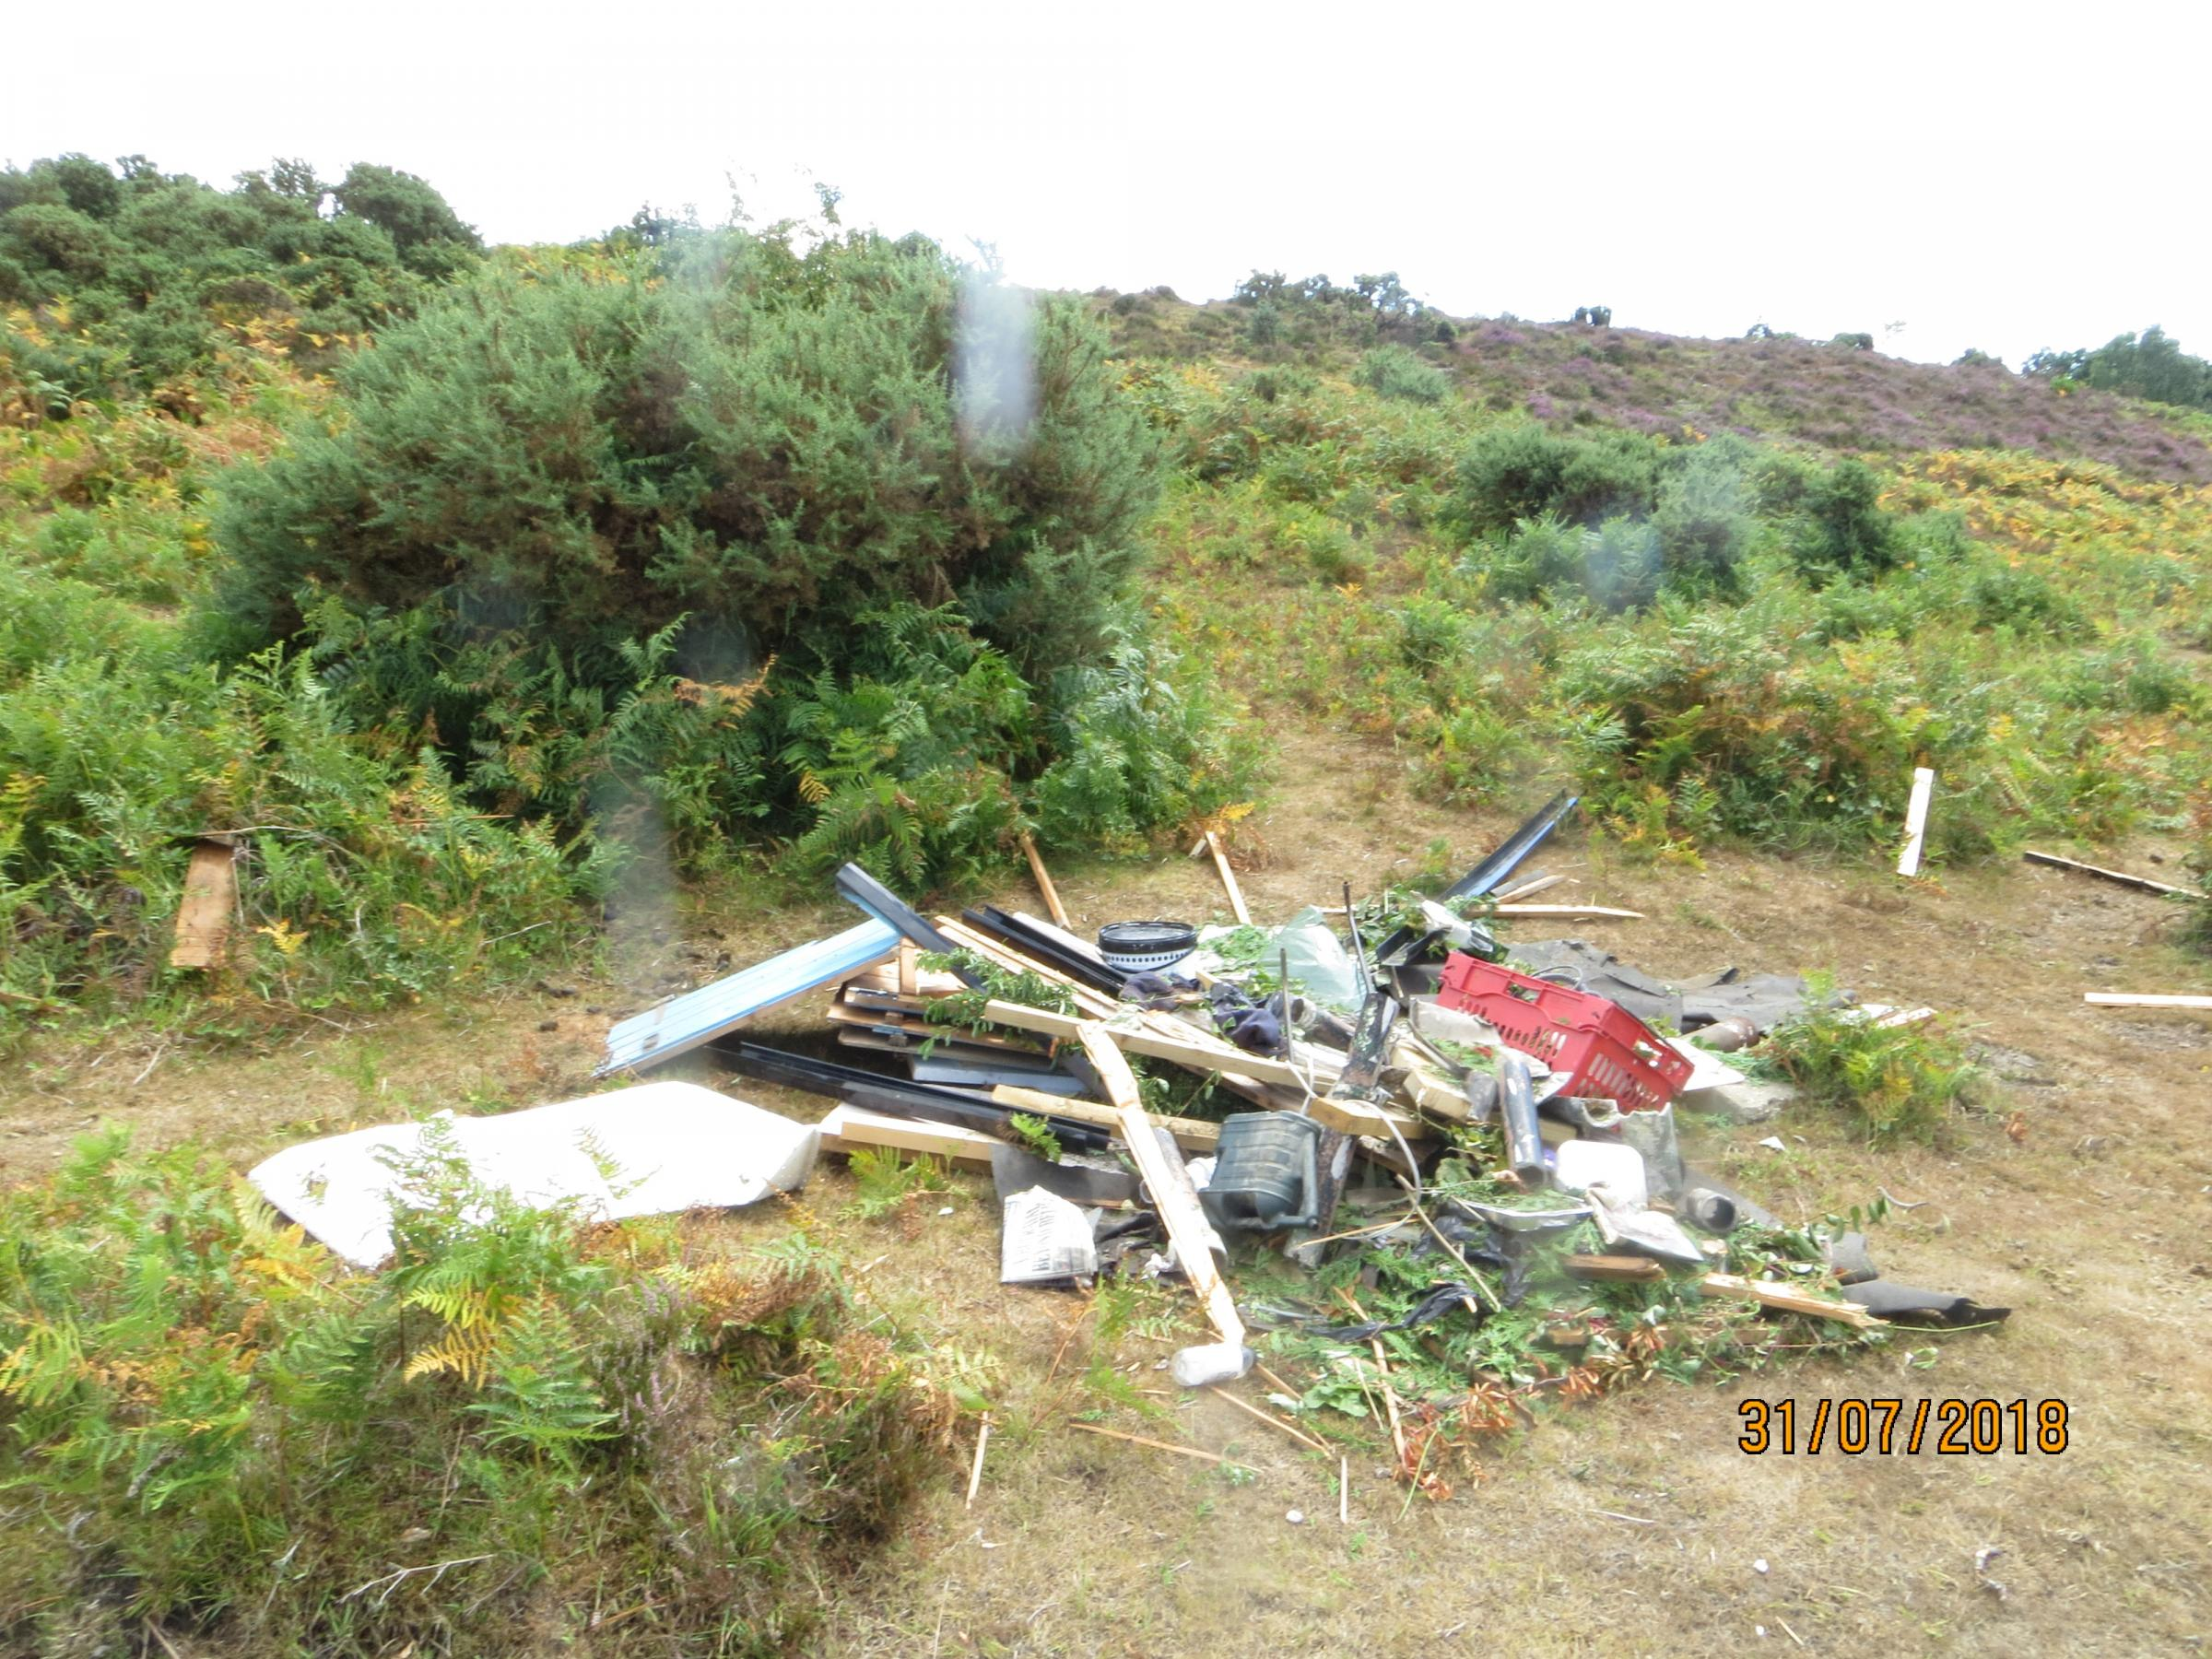 The latest rubbish dumped at Rockford Common. Photo: National Trust Images/Lee Hulin.